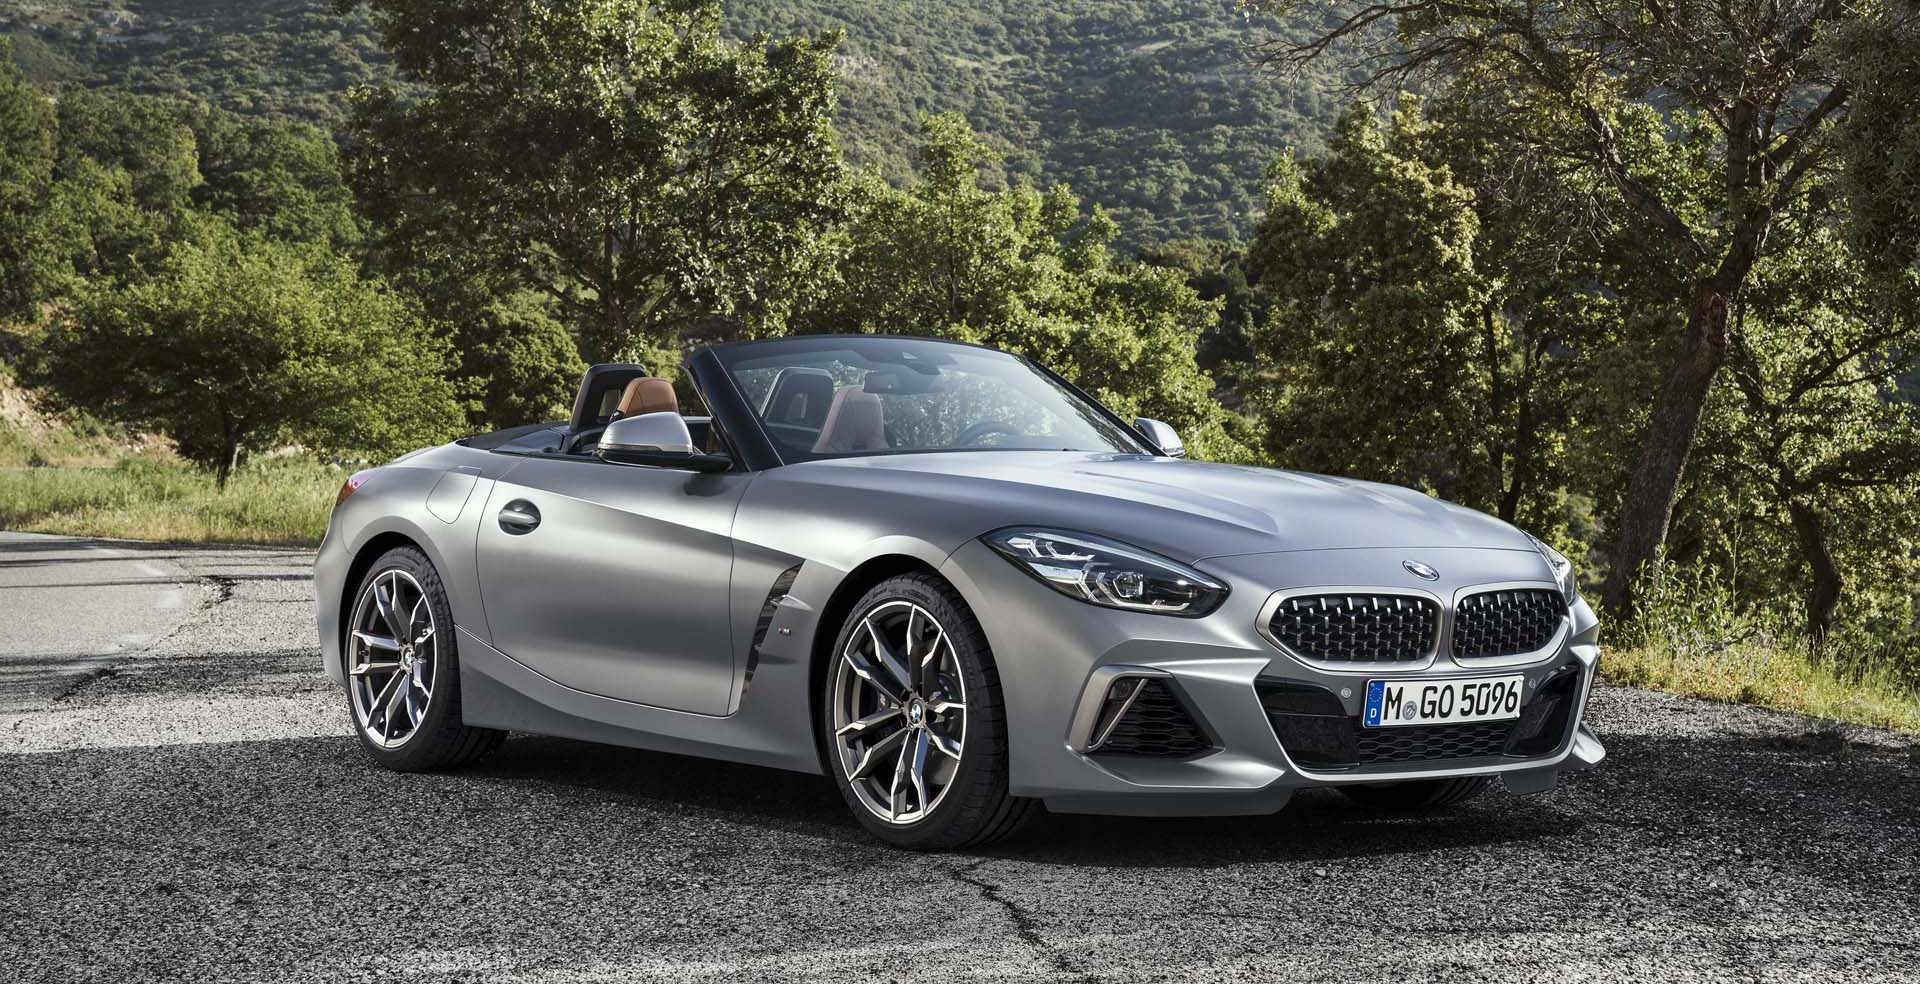 2020 Bmw Z4 M40i Pricing Will Start At $64,695 (d&h Included)